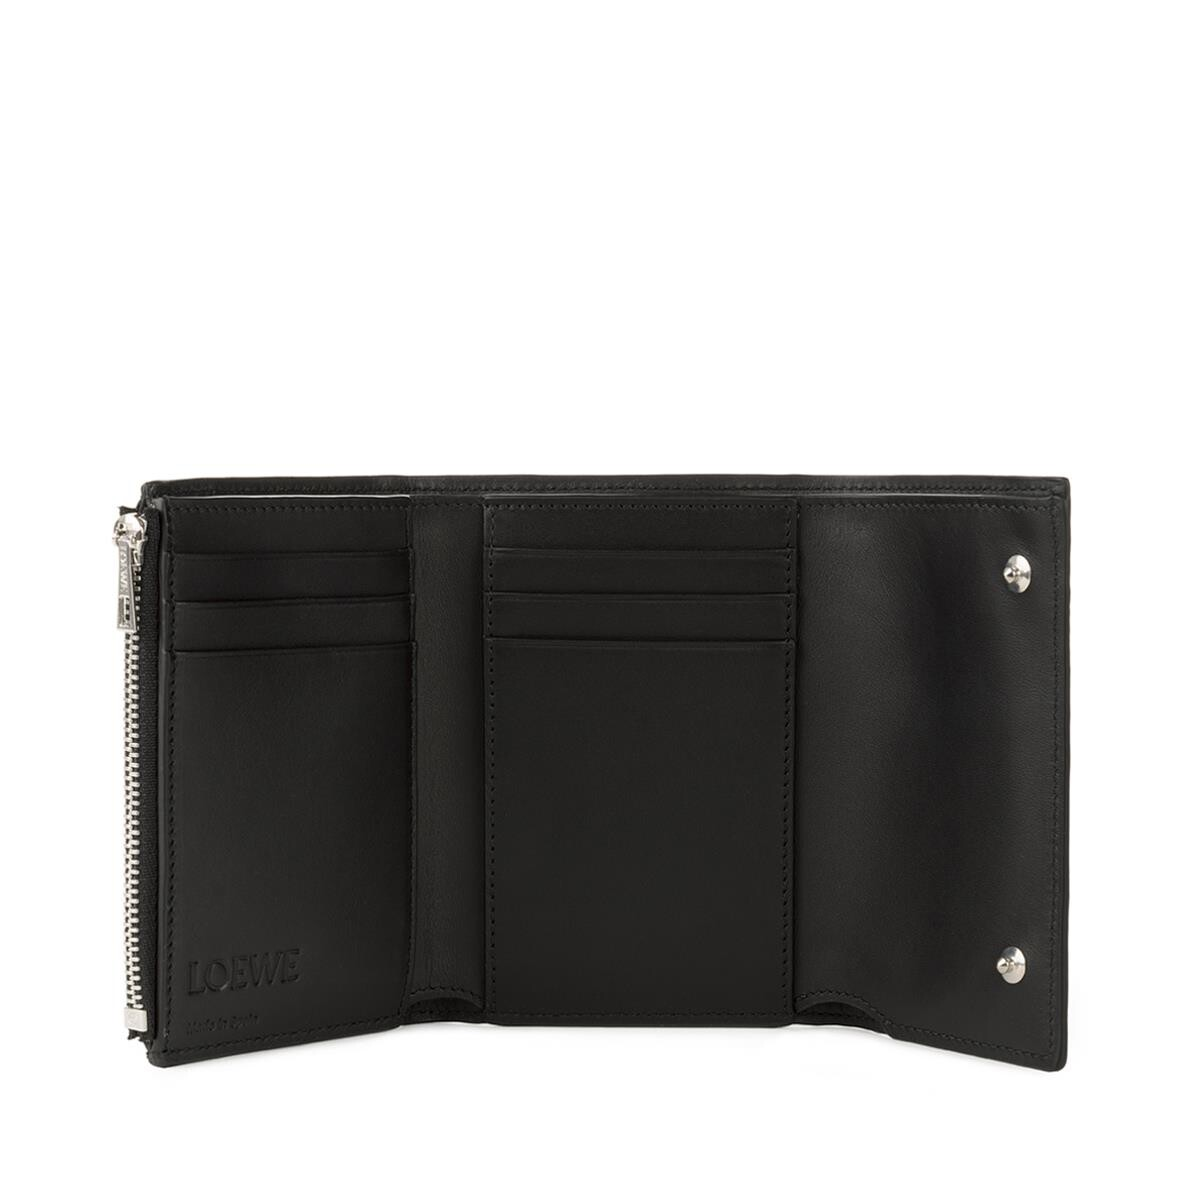 LOEWE Small Vertical Wallet 黑色 front